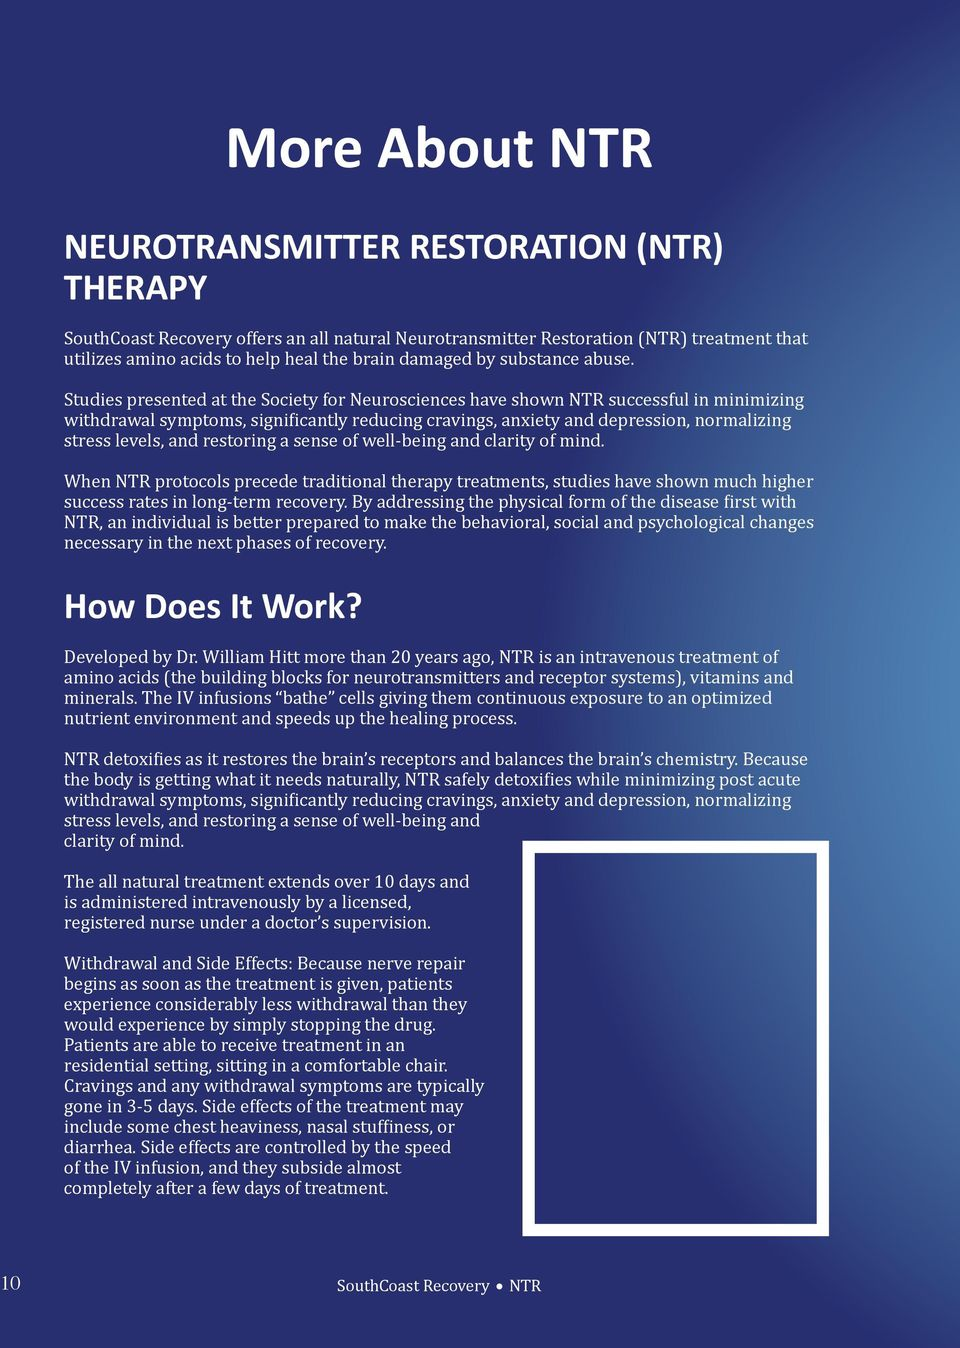 Studies presented at the Society for Neurosciences have shown NTR successful in minimizing withdrawal symptoms, significantly reducing cravings, anxiety and depression, normalizing stress levels, and